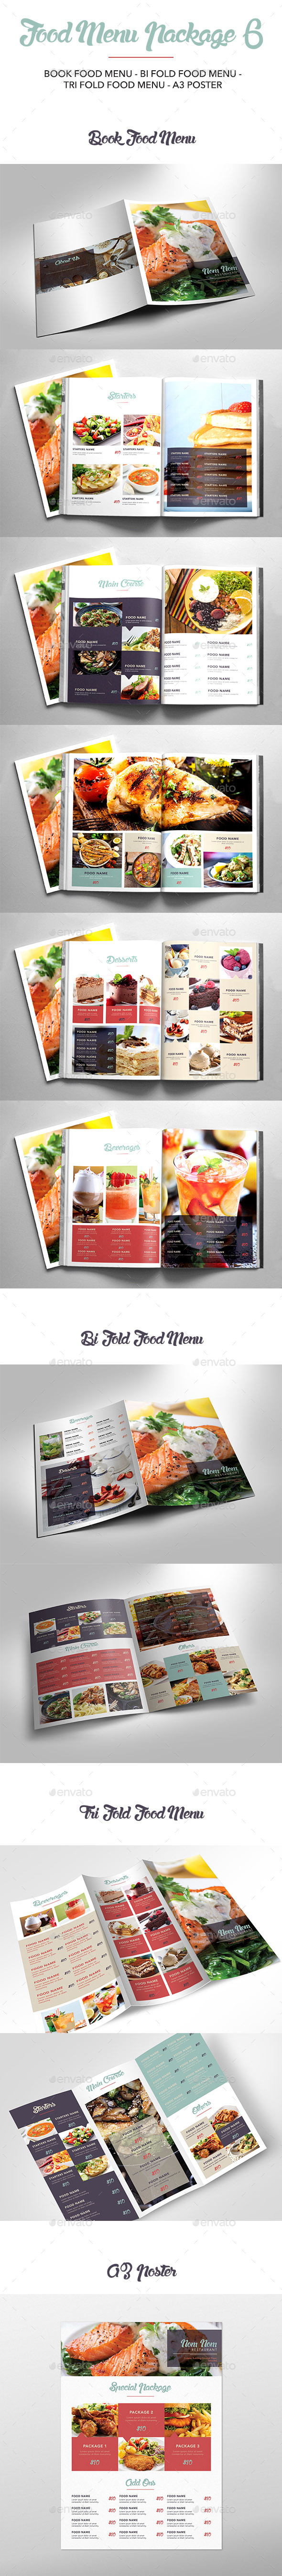 Food Menu Package 6 - Food Menus Print Templates